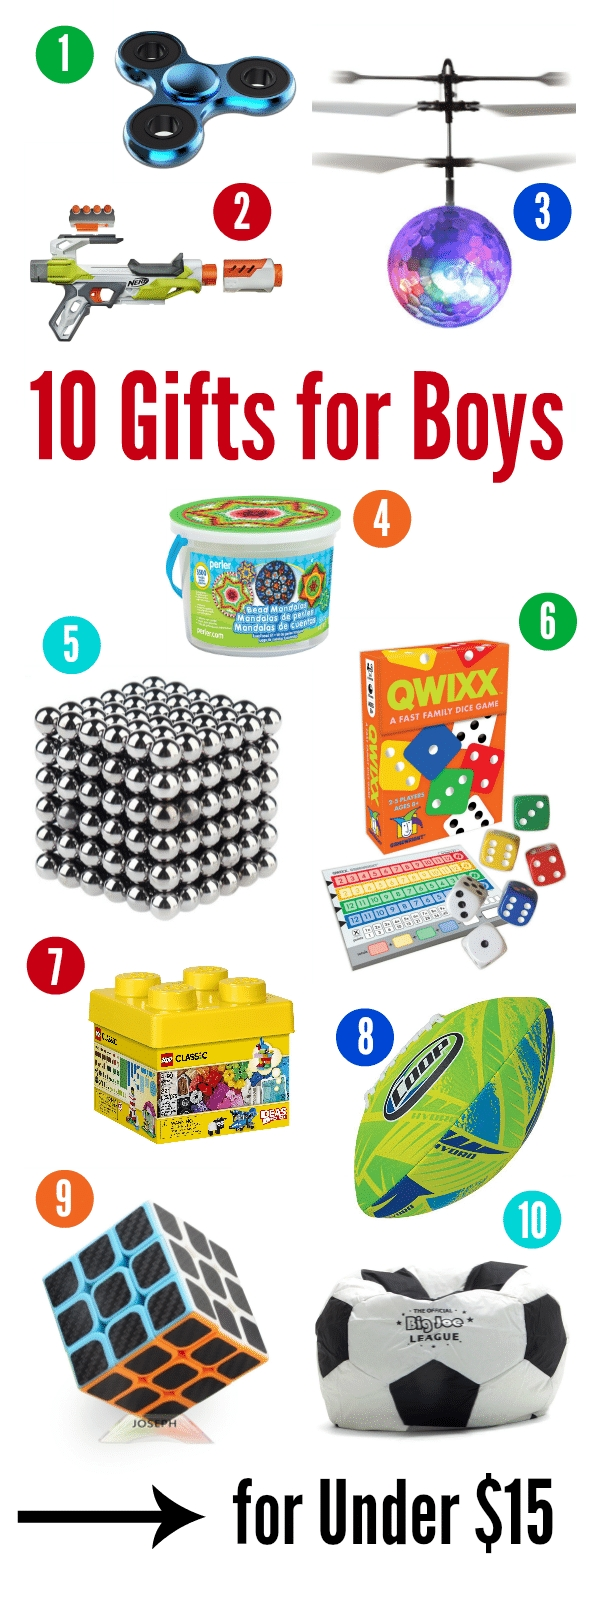 10 Wonderful 10 Year Old Gift Ideas 10 best gifts for a 10 year old boy for under 15 fun squared 19 2021